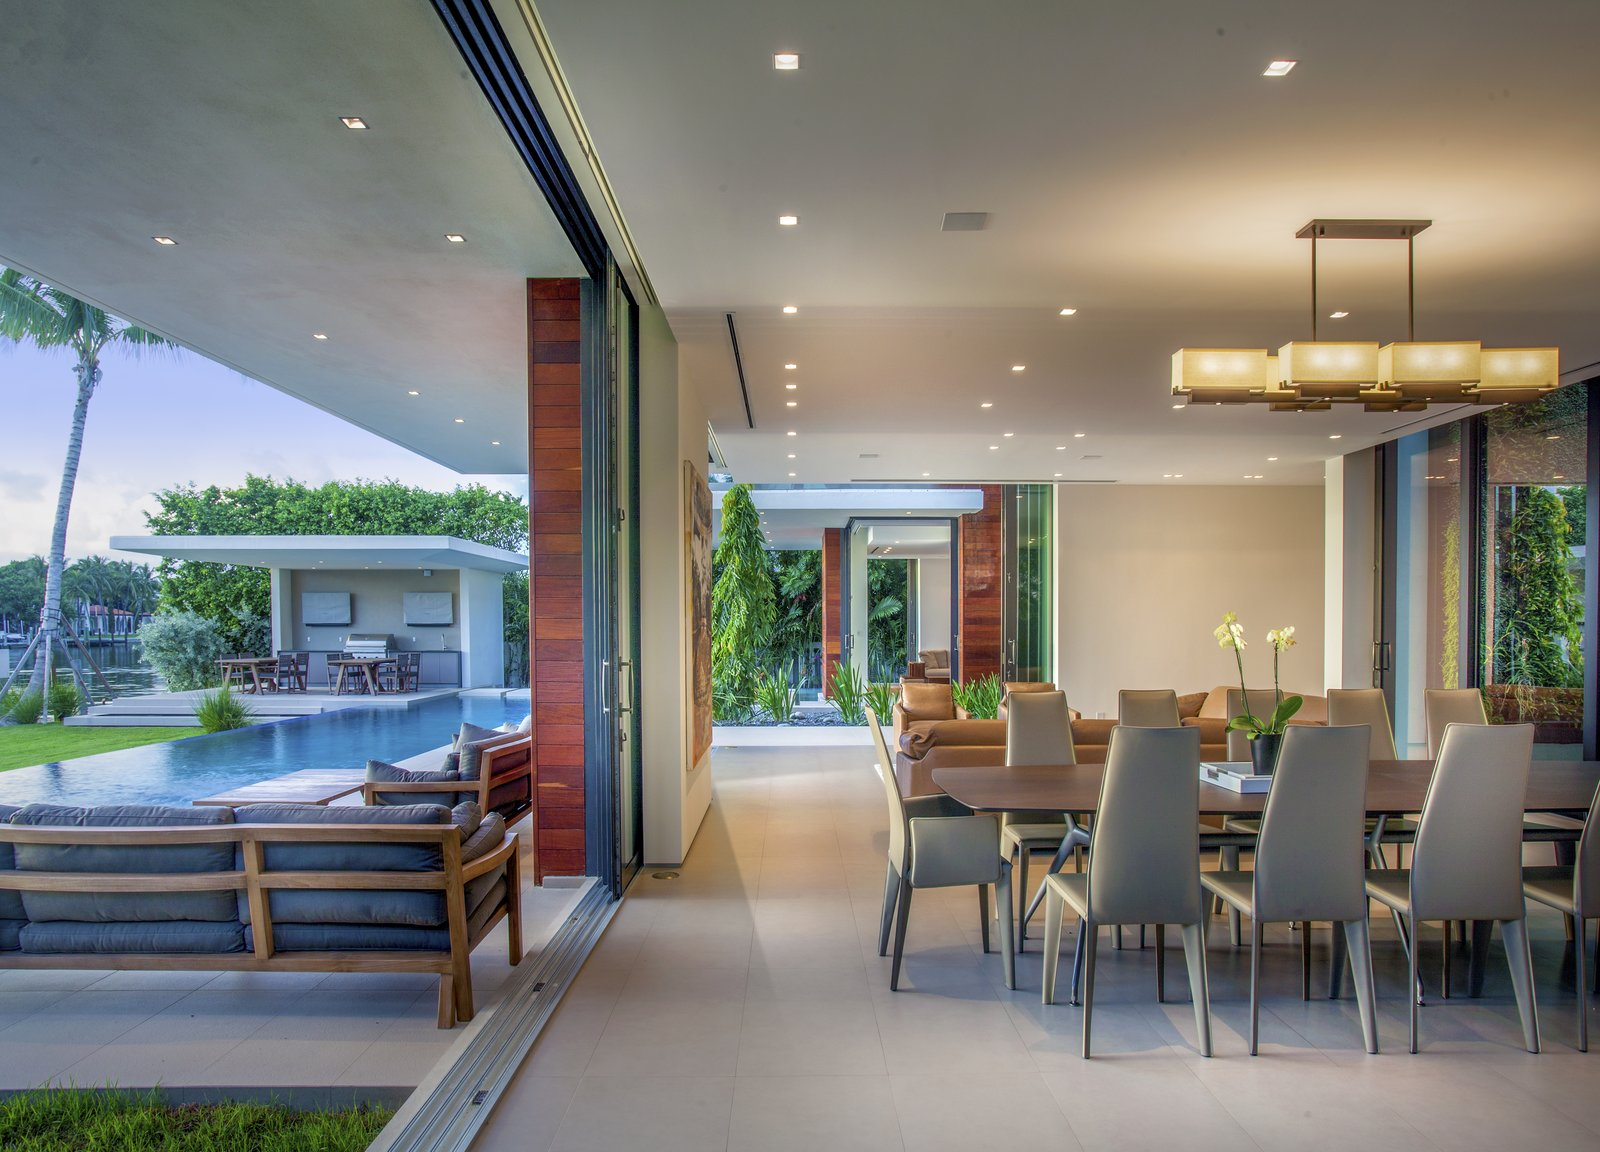 Indoor-outdoor living and dining area  Allison Road Residence by Choeff Levy Fischman